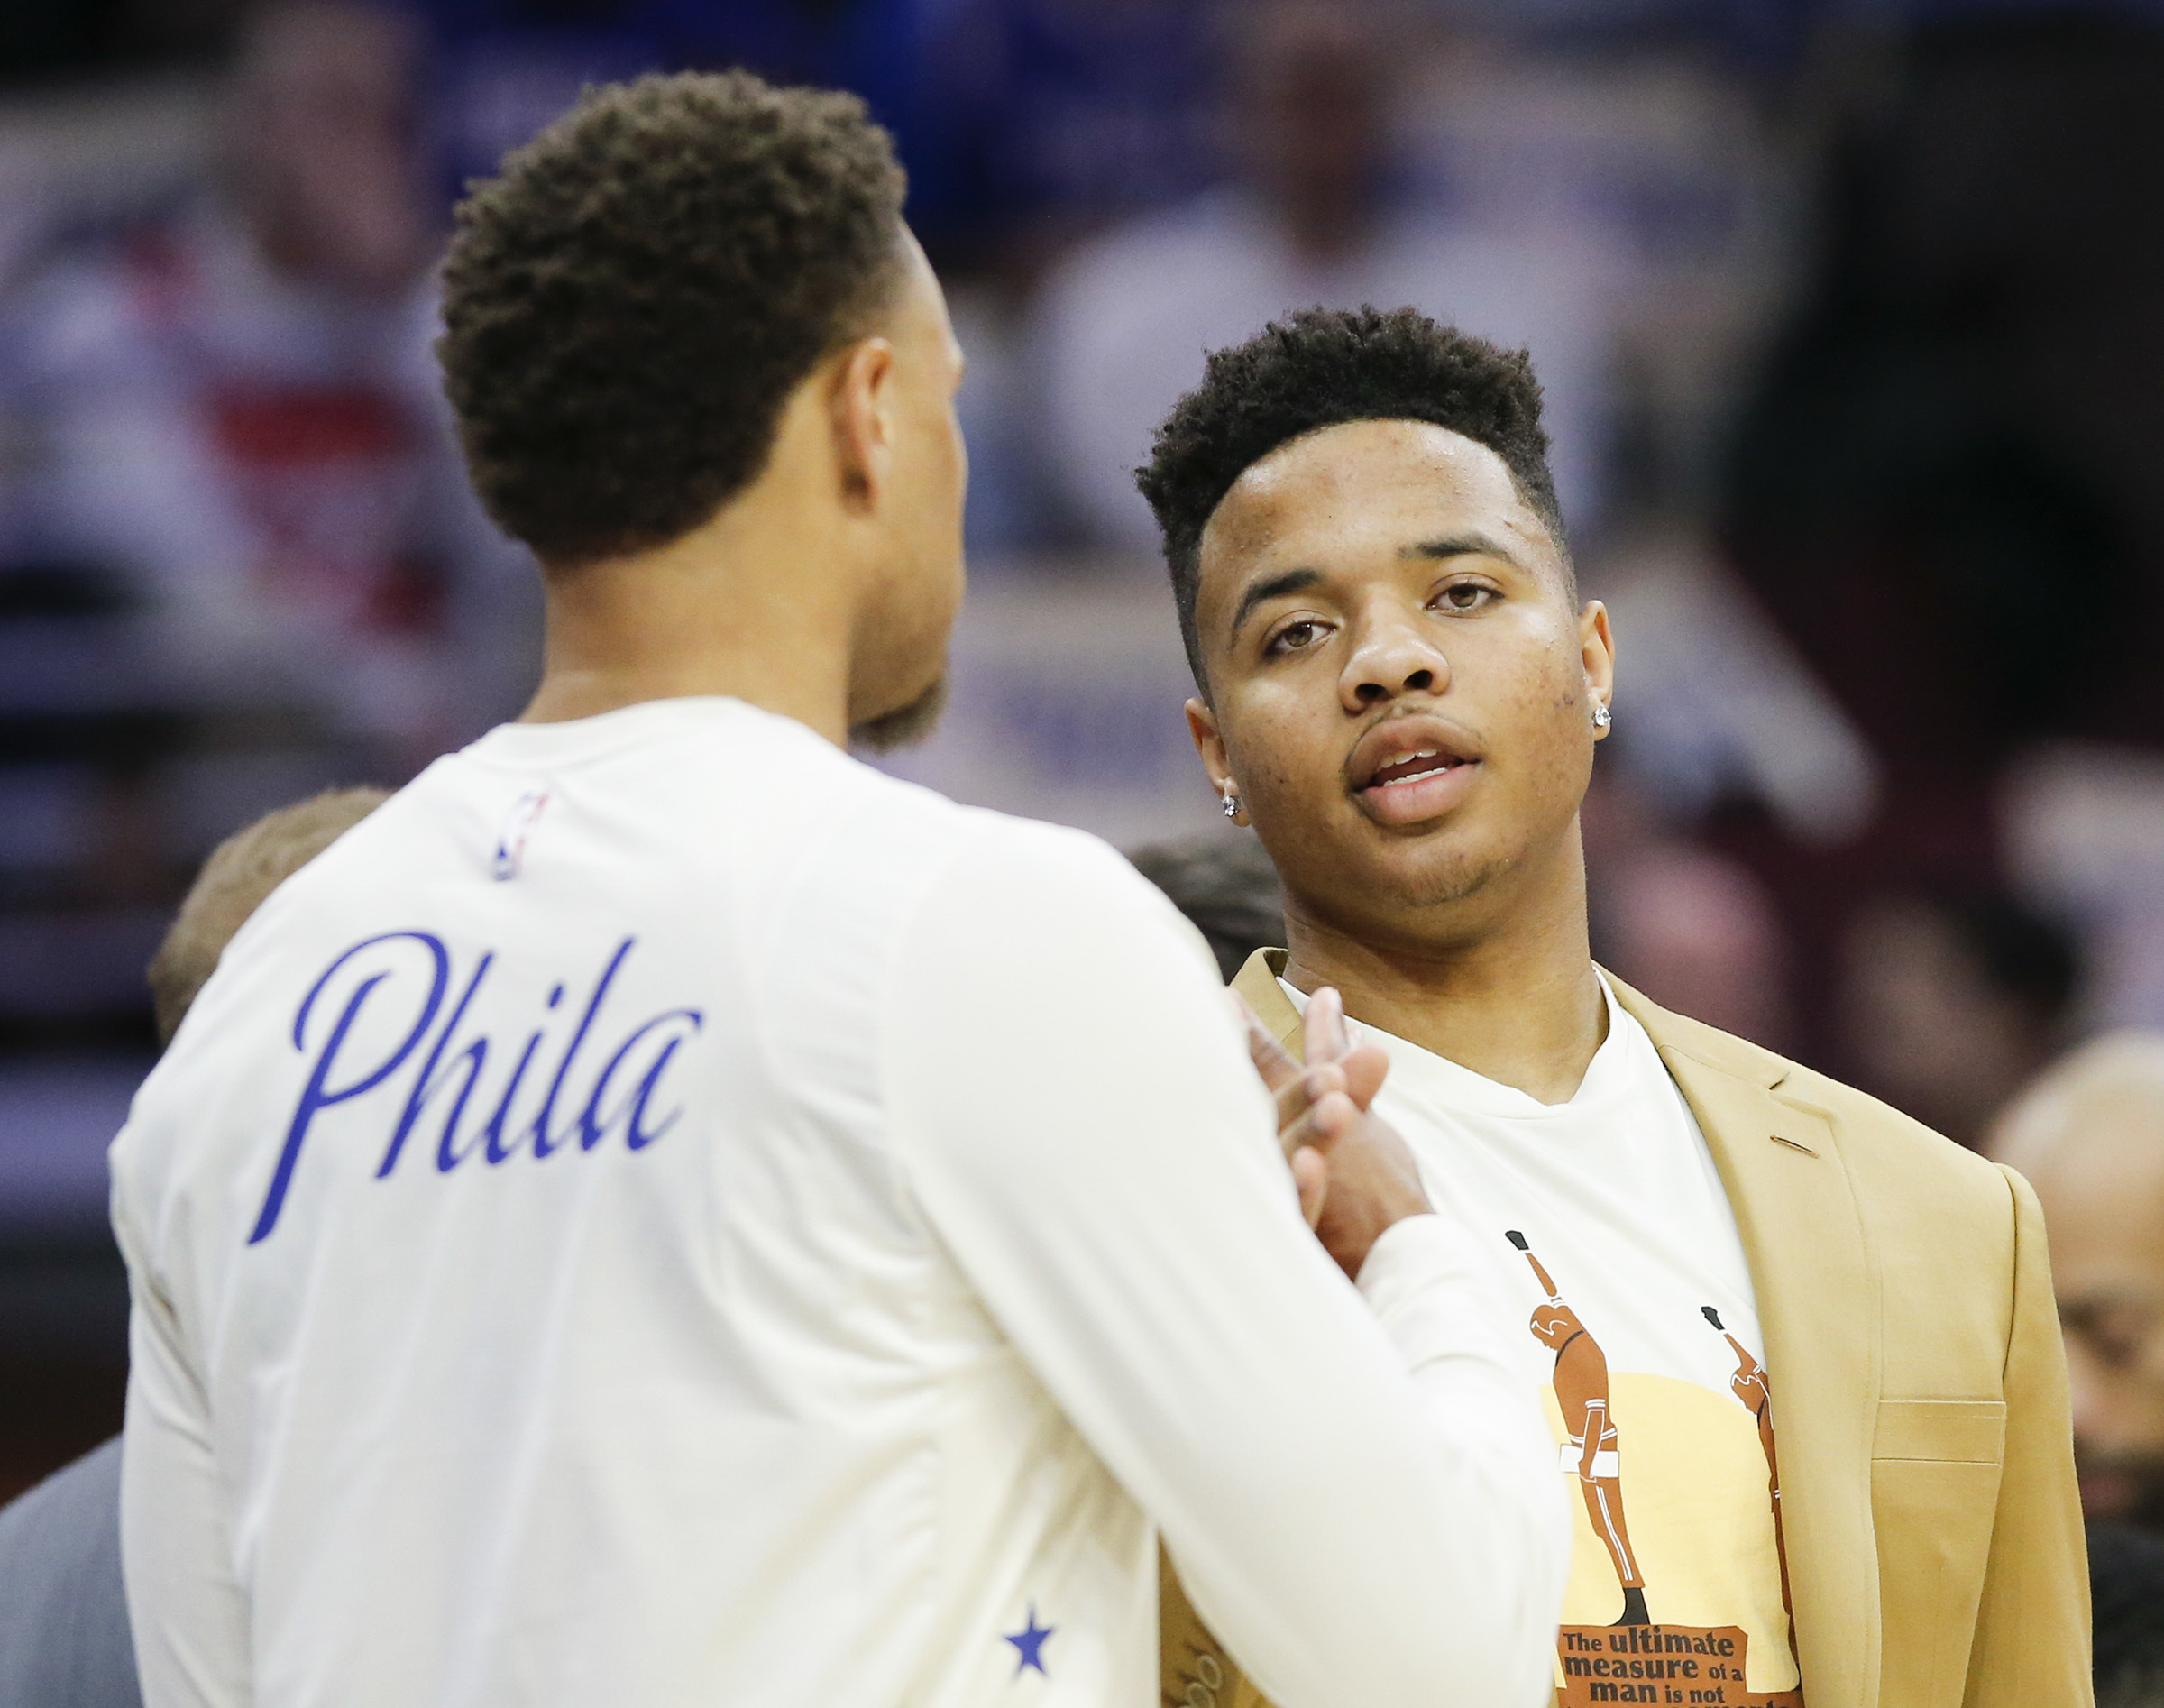 Sixers guard Markelle Fultz (right) talking to teammate Justin Anderson during a game earlier this month.